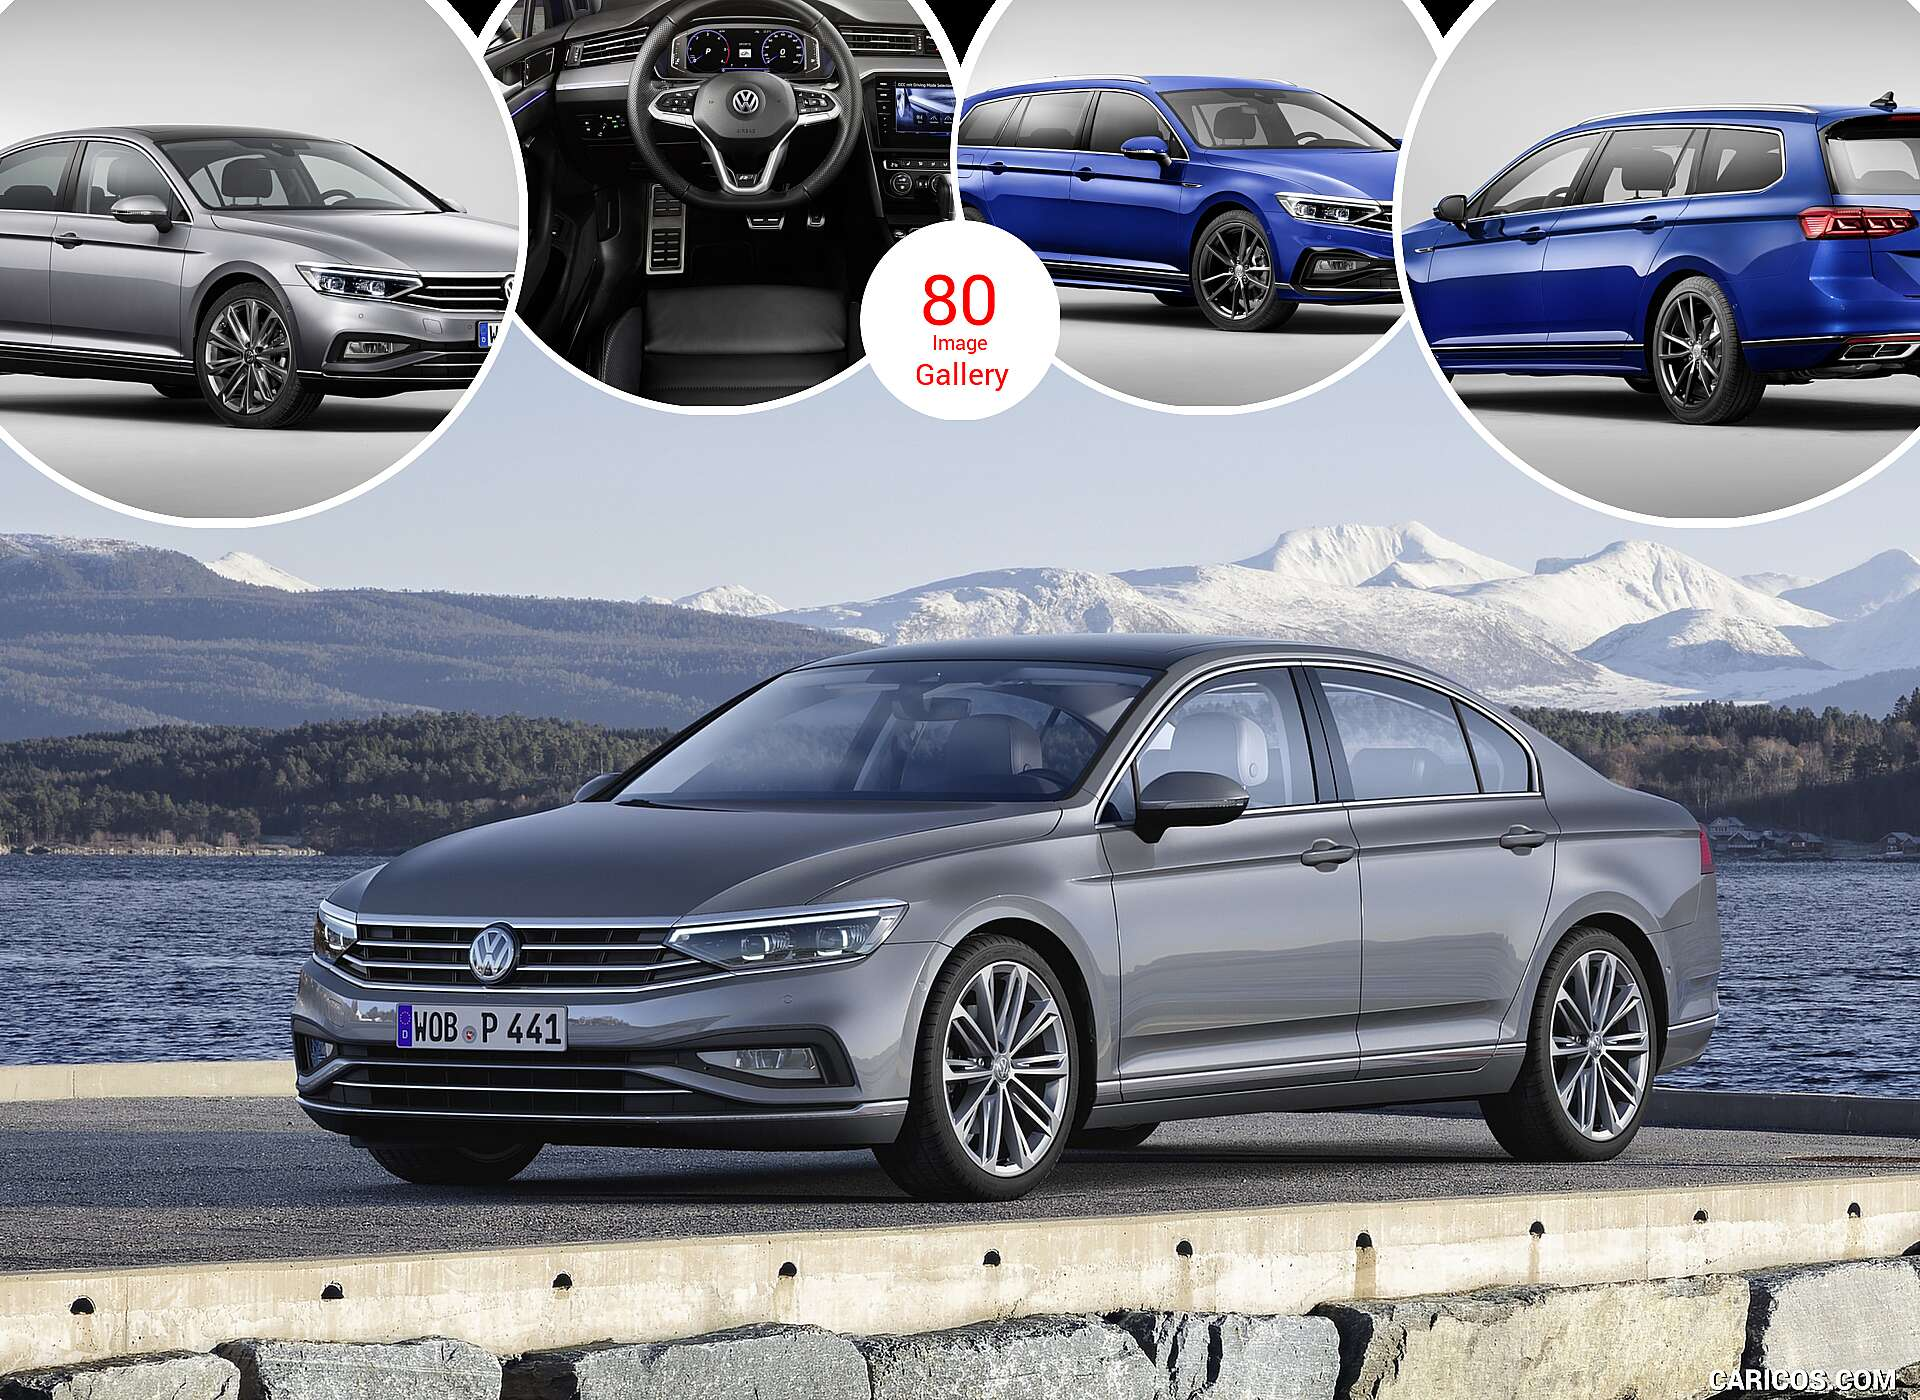 2020 Volkswagen Passat Sedan and Variant (EU-Spec)